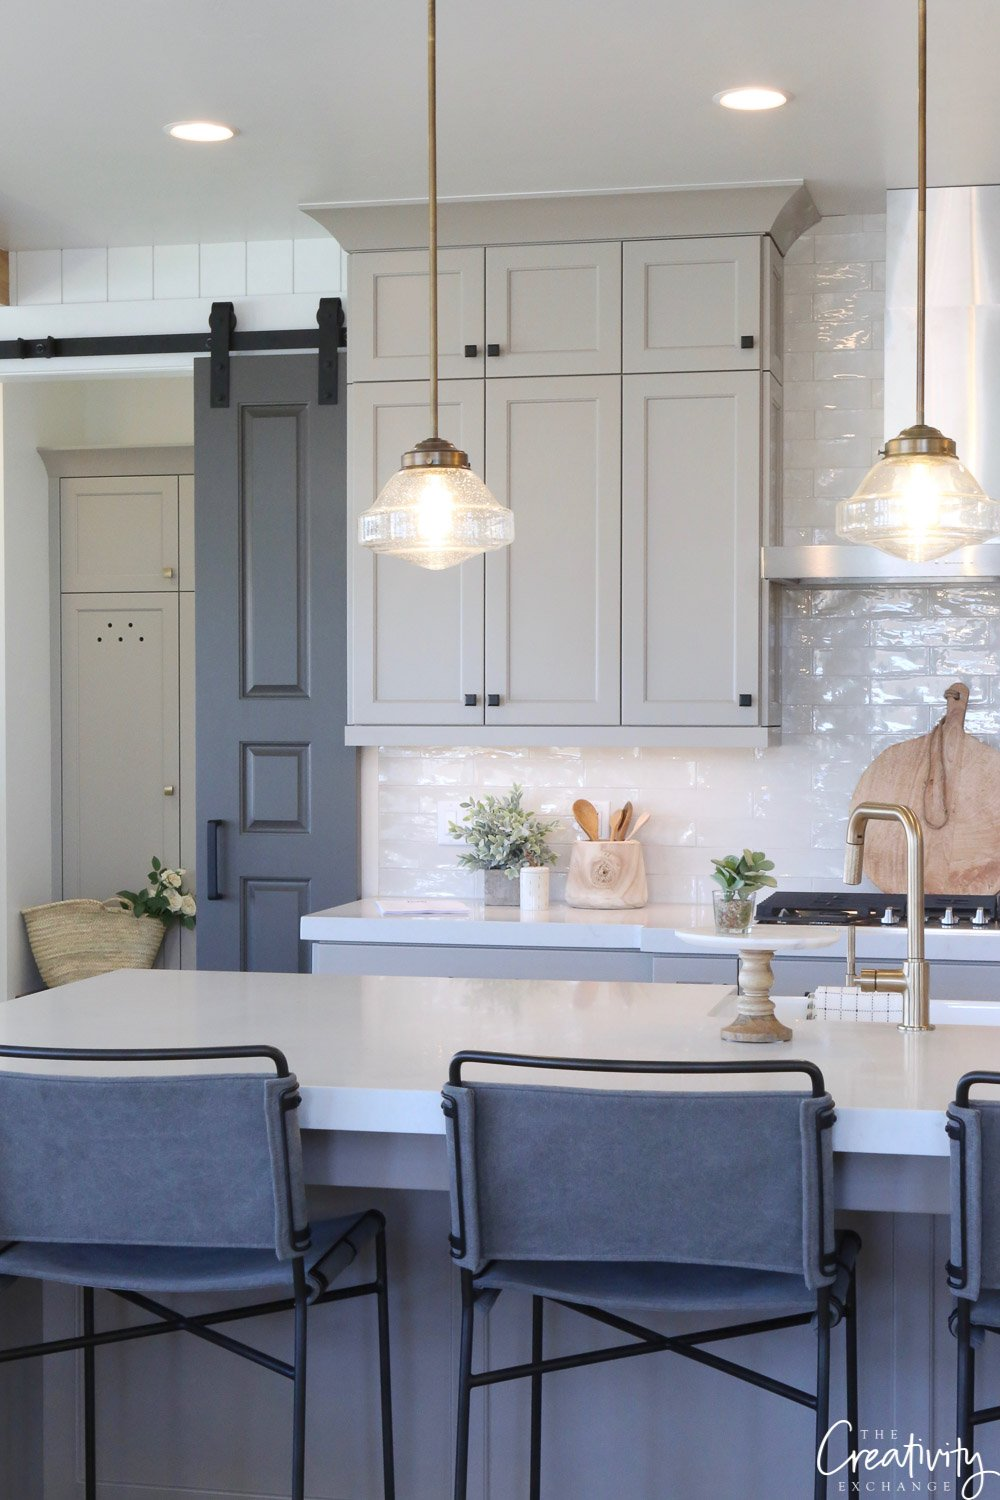 Repose Gray Cabinets Black Hardware